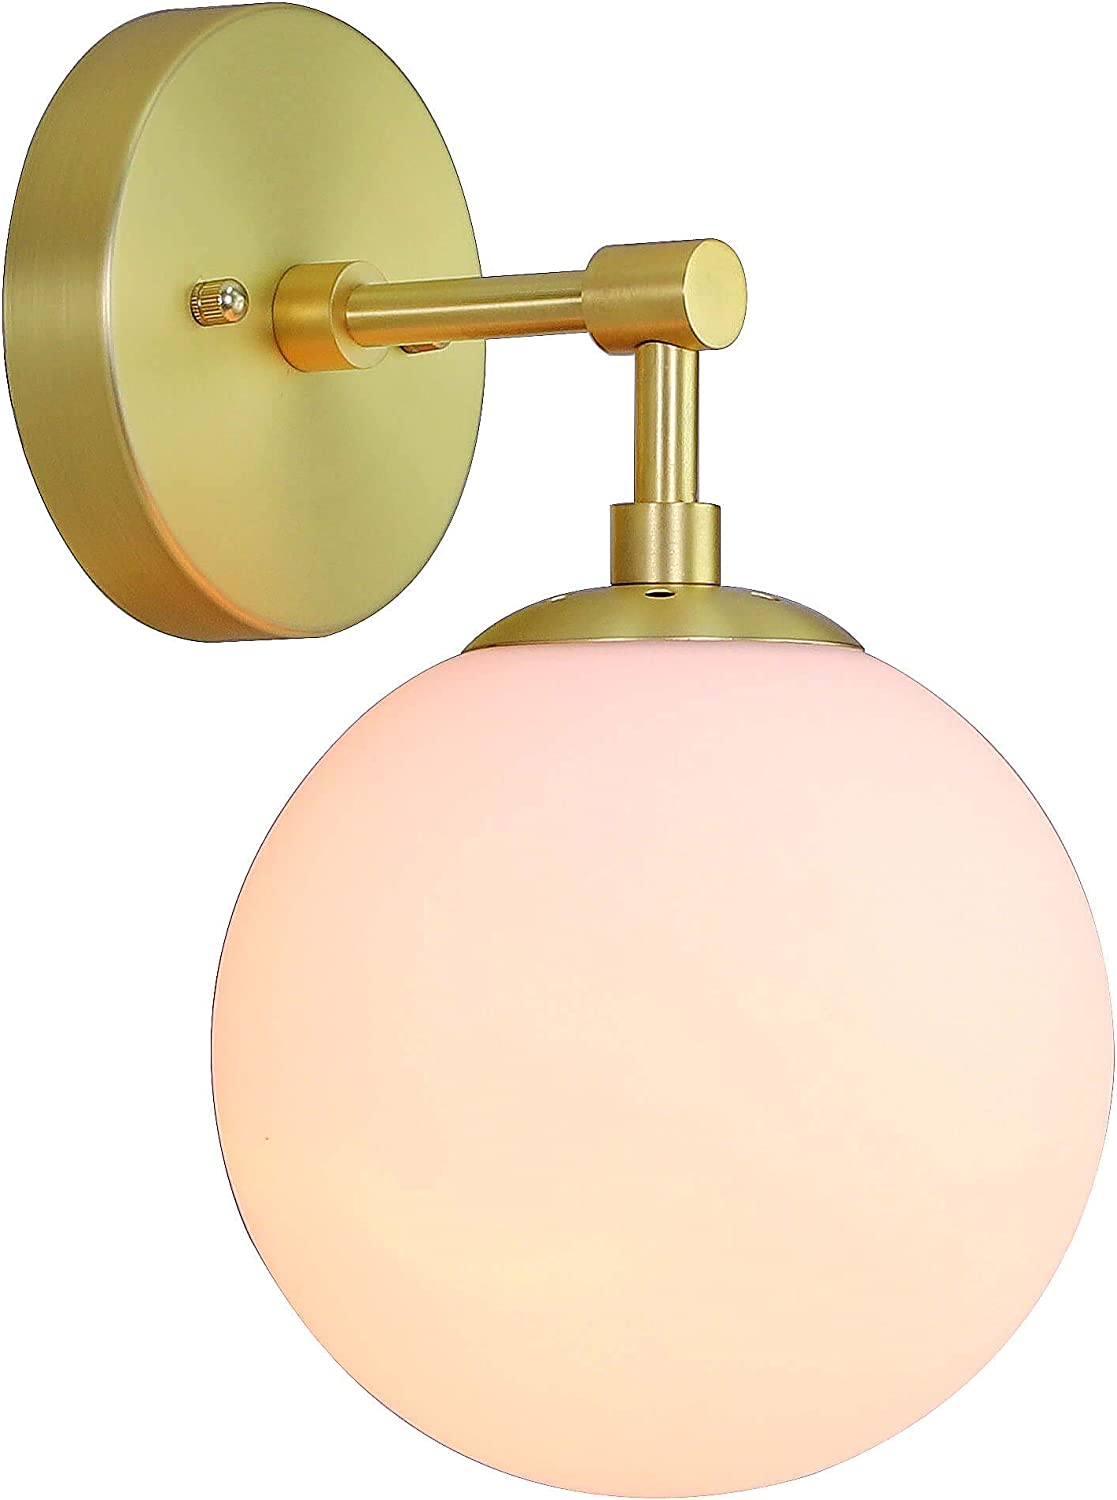 Wall Light 1 Light Vintage Wall Sconce with White Globe Glass in Satin Brass, Bathroom Vanity Lighting Suitable for Living Room & Hallway XiNBEi-Lighting XB-W1211-SB